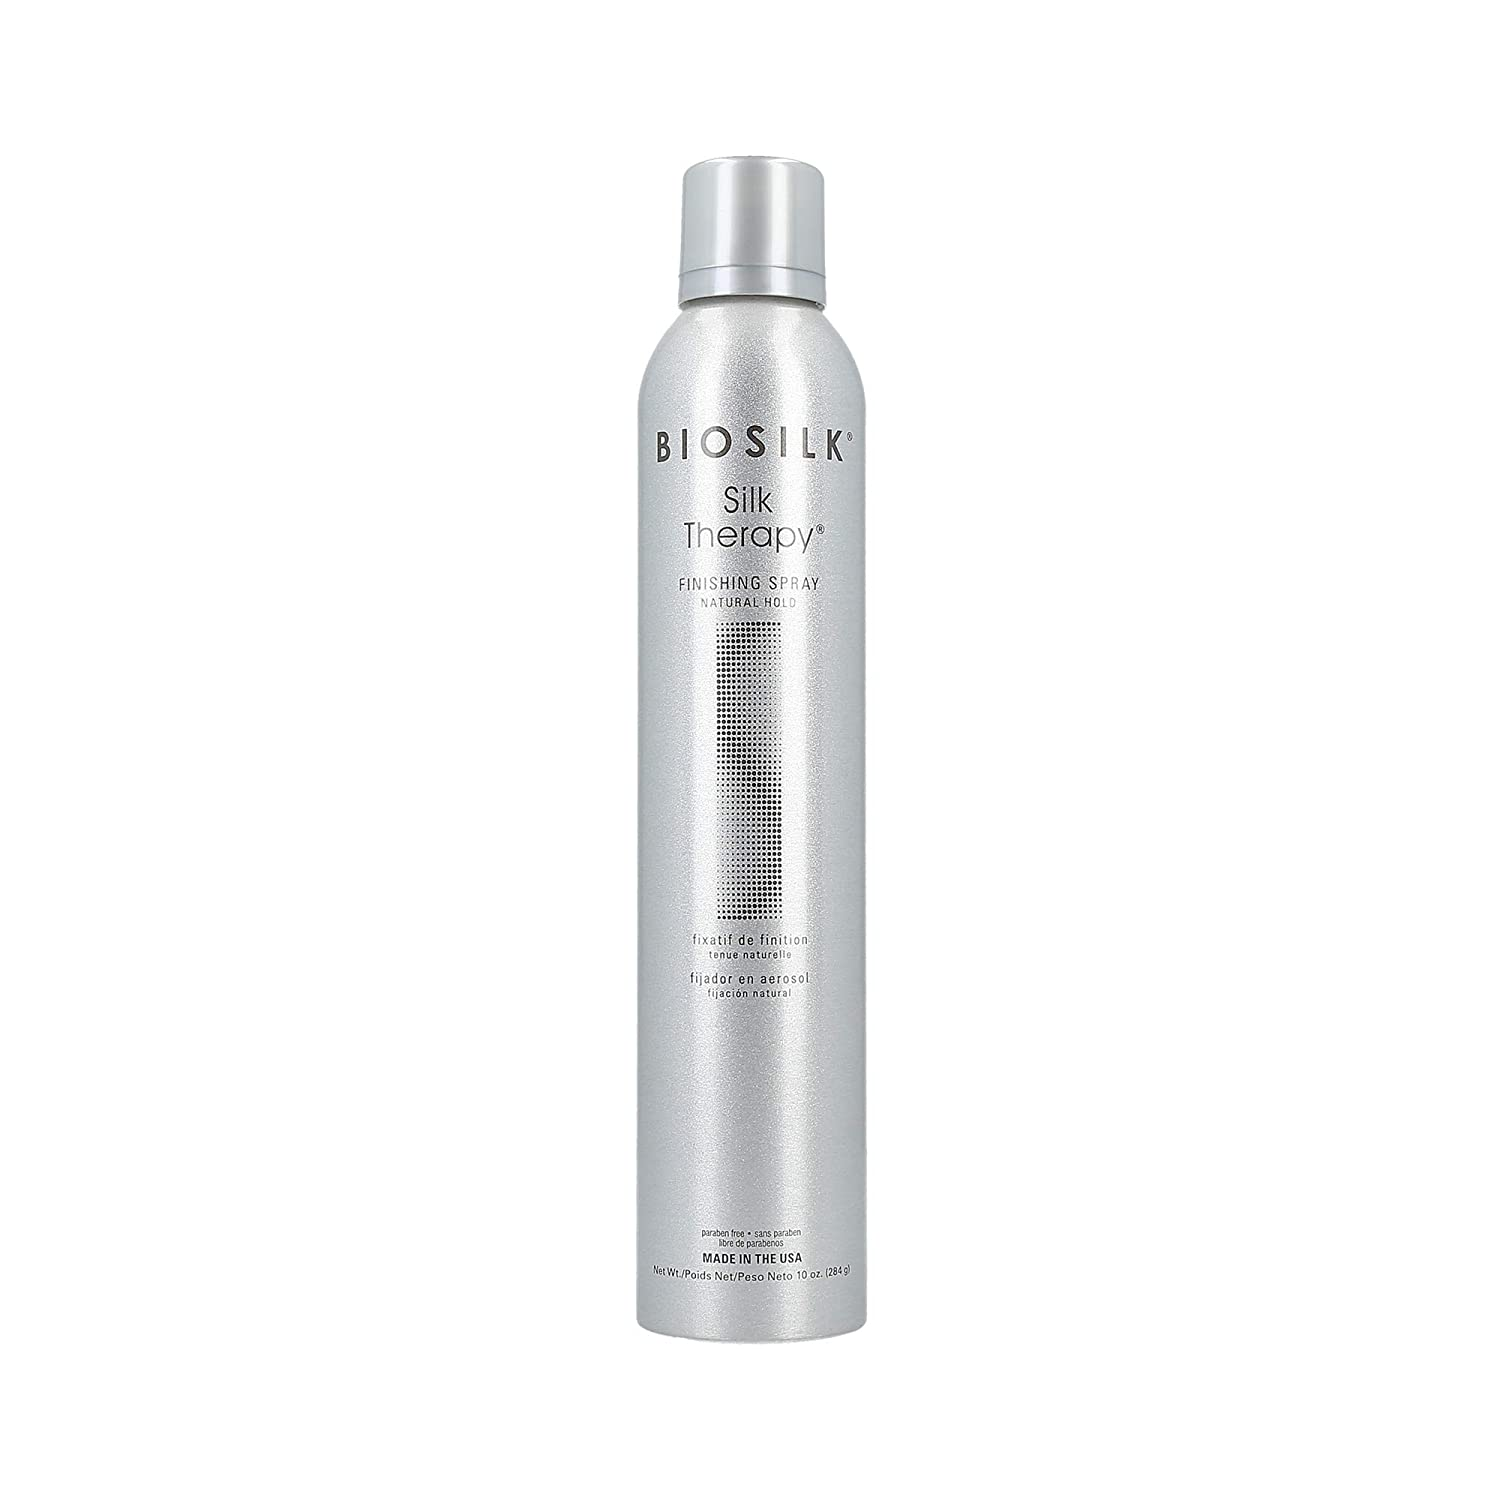 Biosilk Silk Therapy Natural Hold Hair unisex Spray Finishing Unise for Sales of SALE items from new works